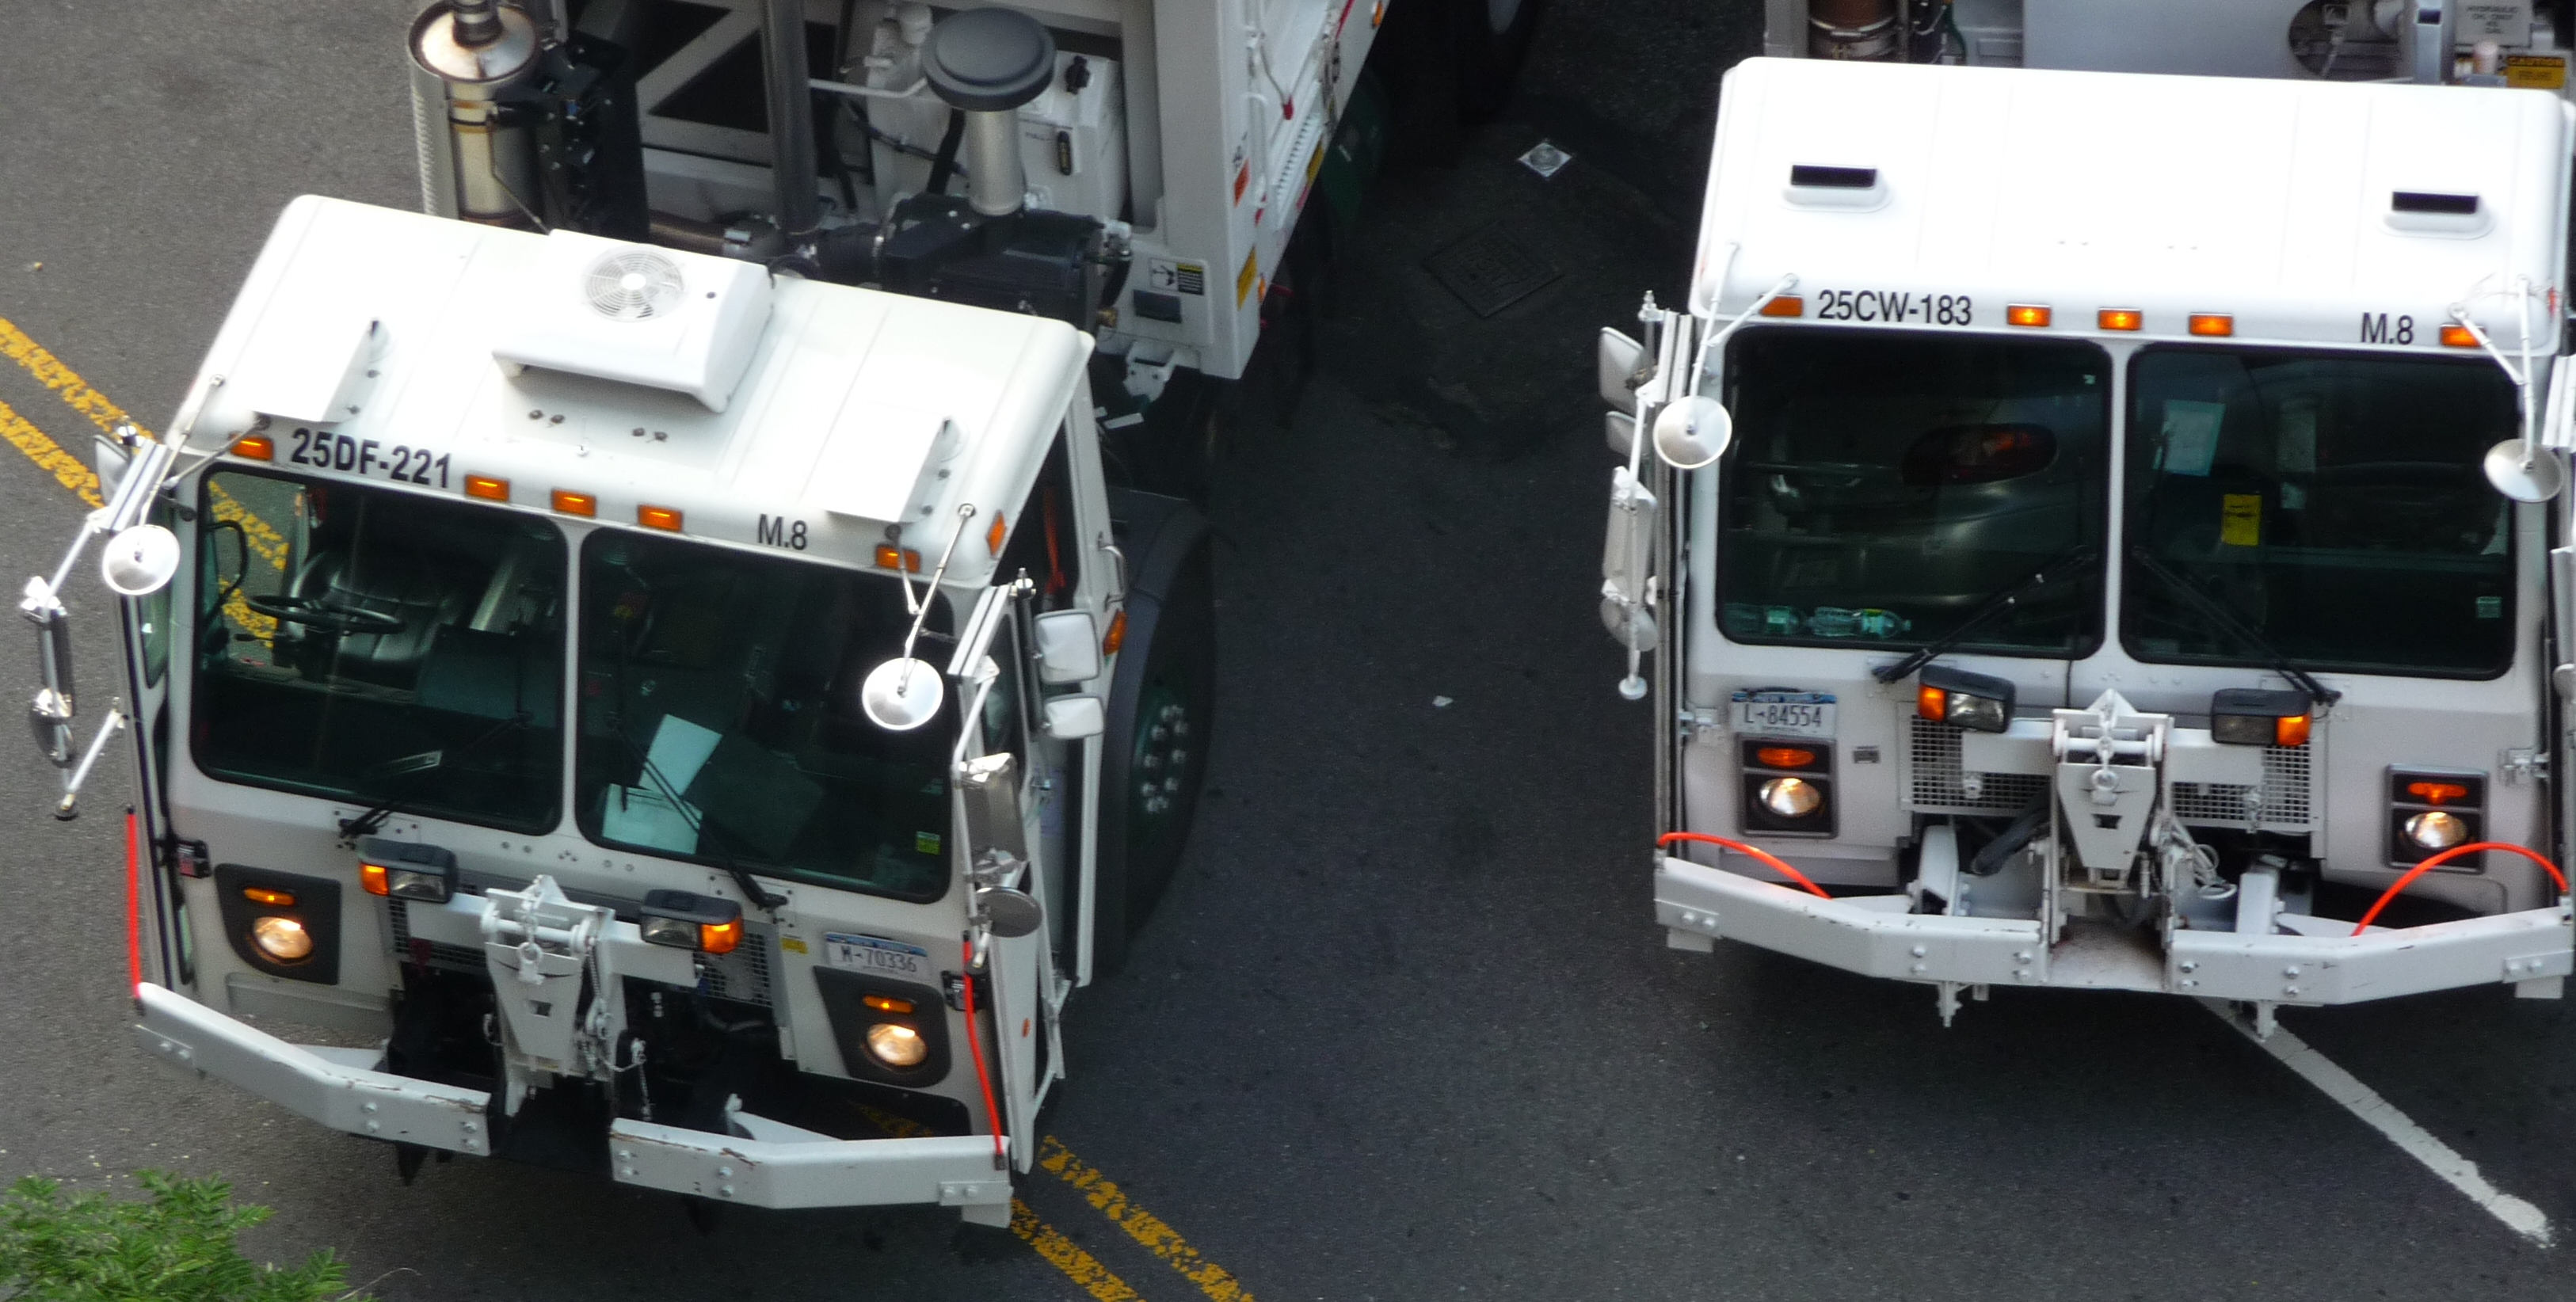 Image result for garbage trucks nyc""